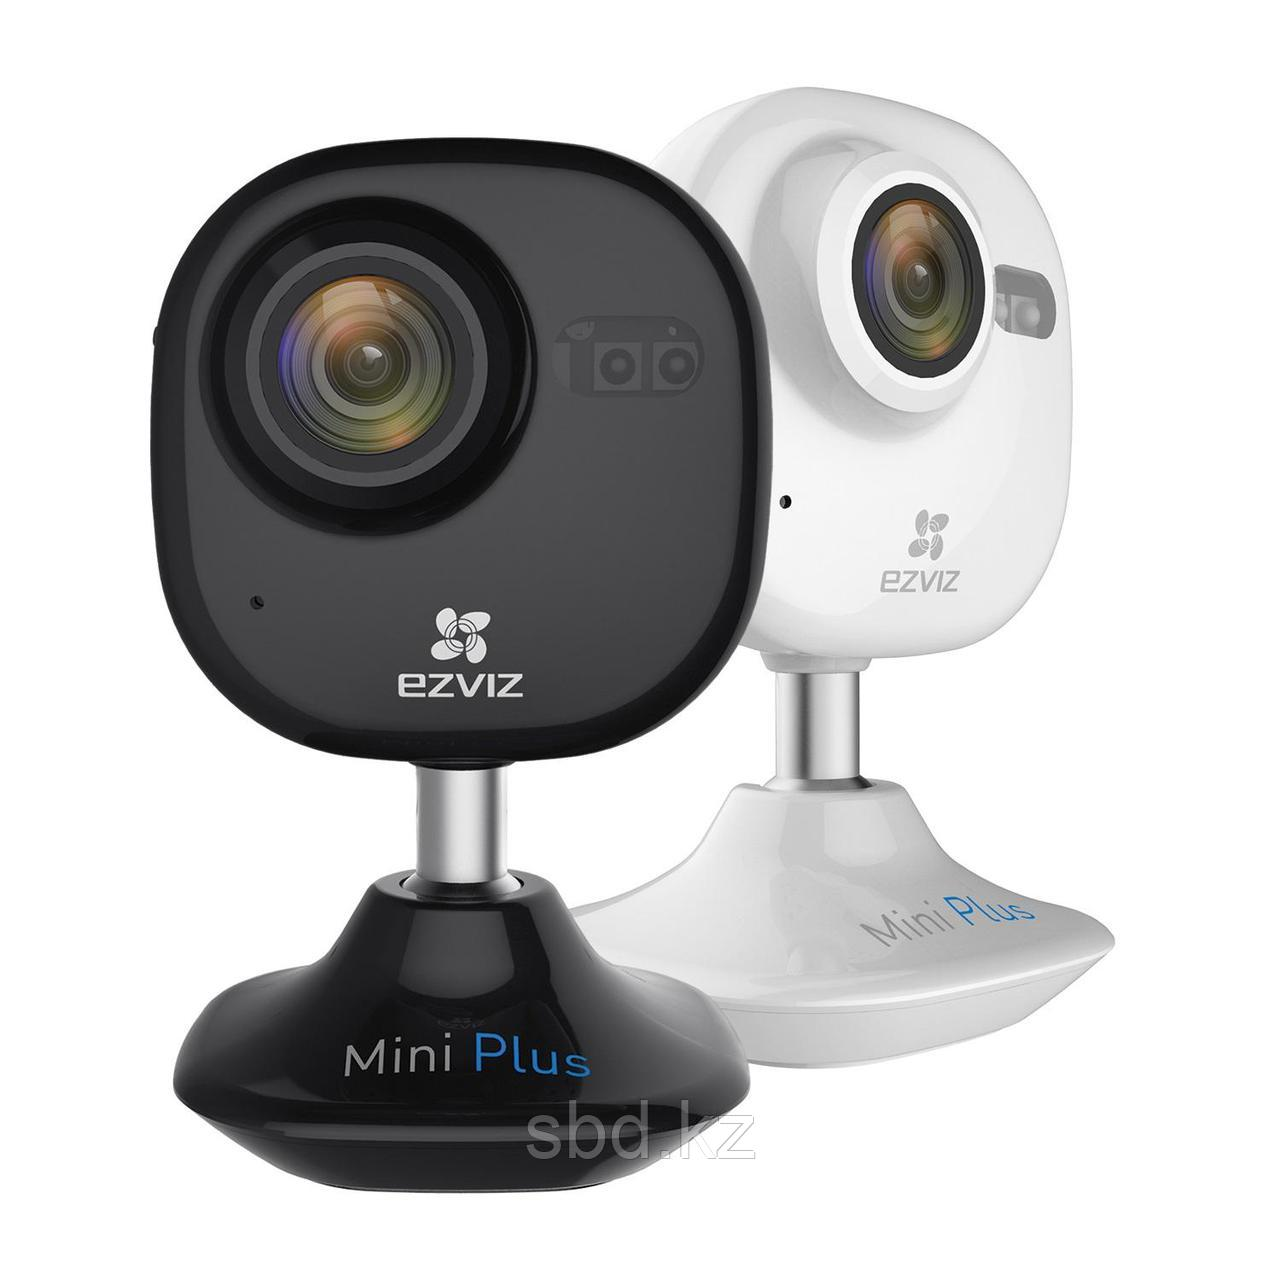 IP камера Ezviz C2Mini Plus (CS-CV200-A1-52WFR)